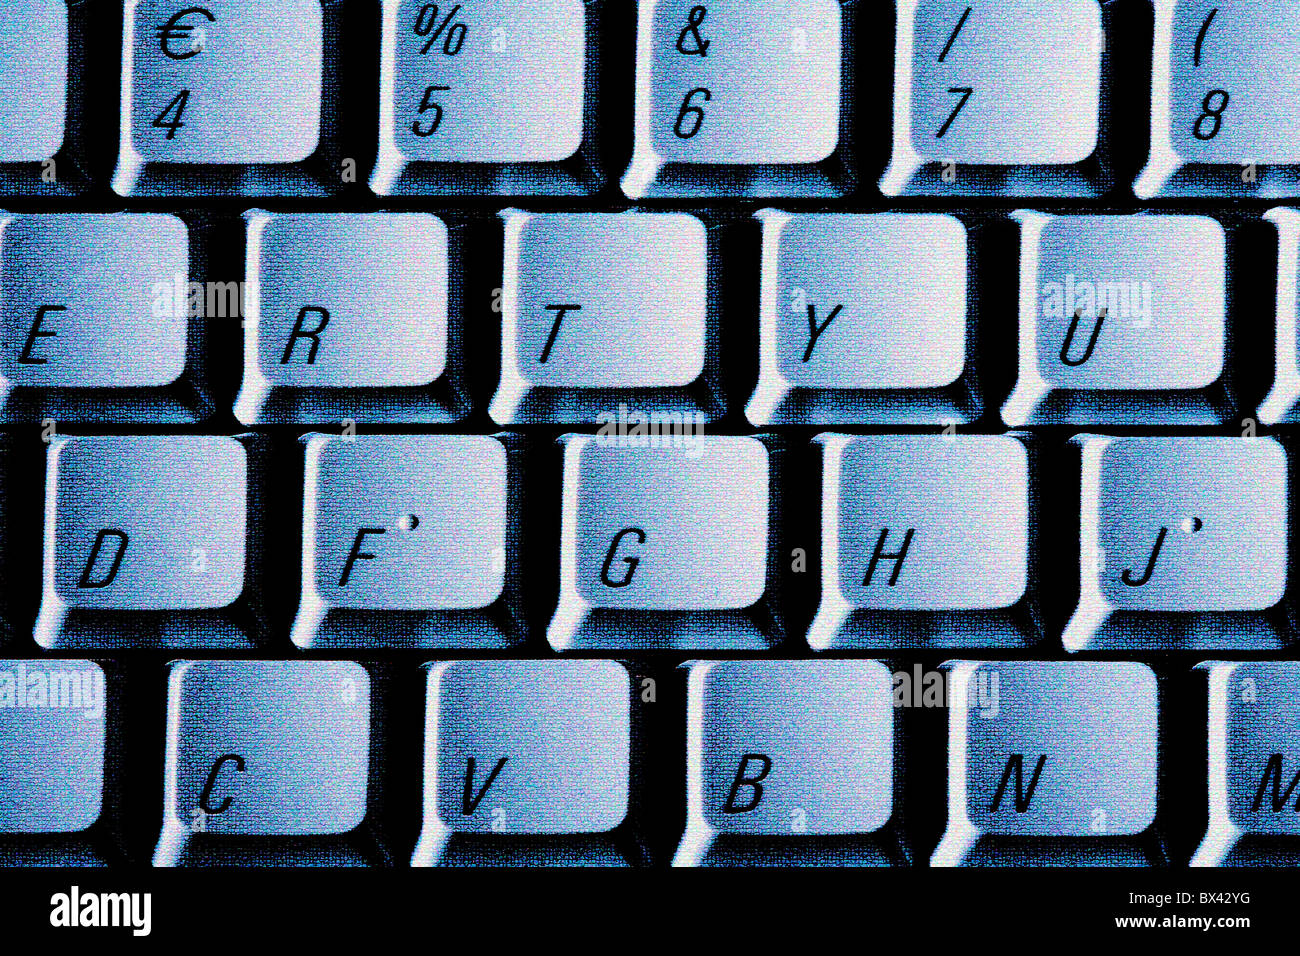 Computers Keyboard Keyboard Symbol Keys Stock Photos Computers